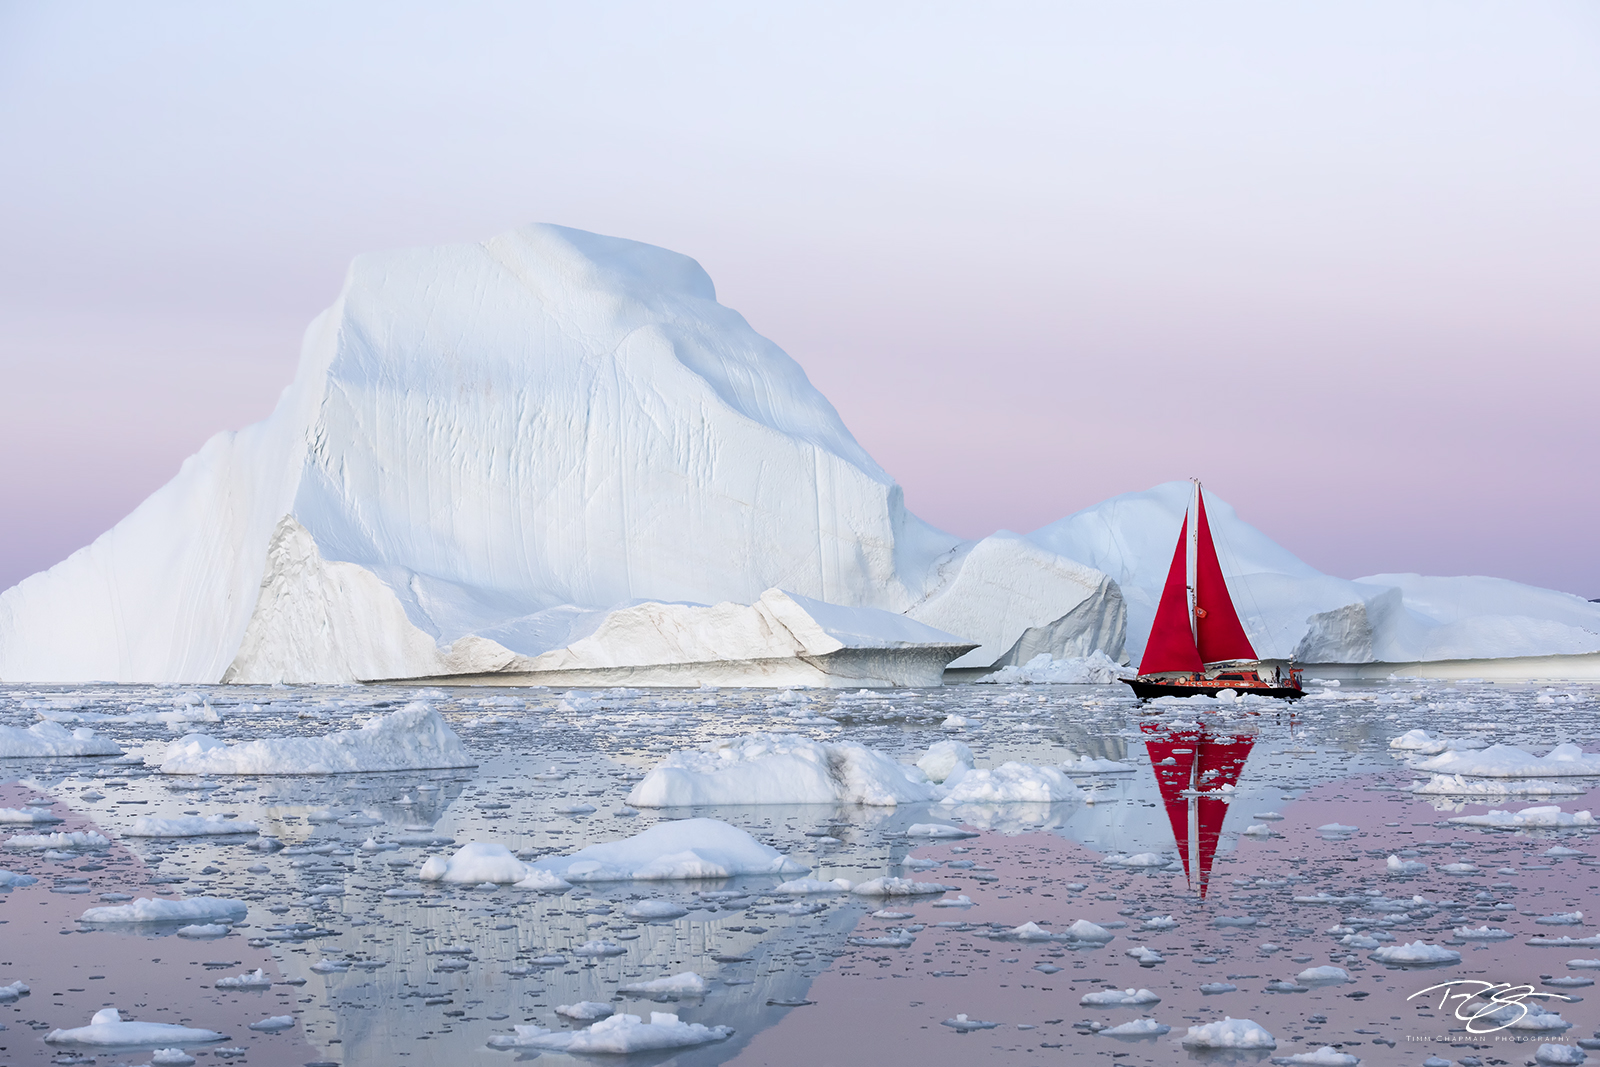 ice; iceberg; dusk; twilight; eventide; icefjord; ship; sailboat; schooner; sails; red sails; scarlet sails, reflection; pink sky; pastel sky; alpenglow